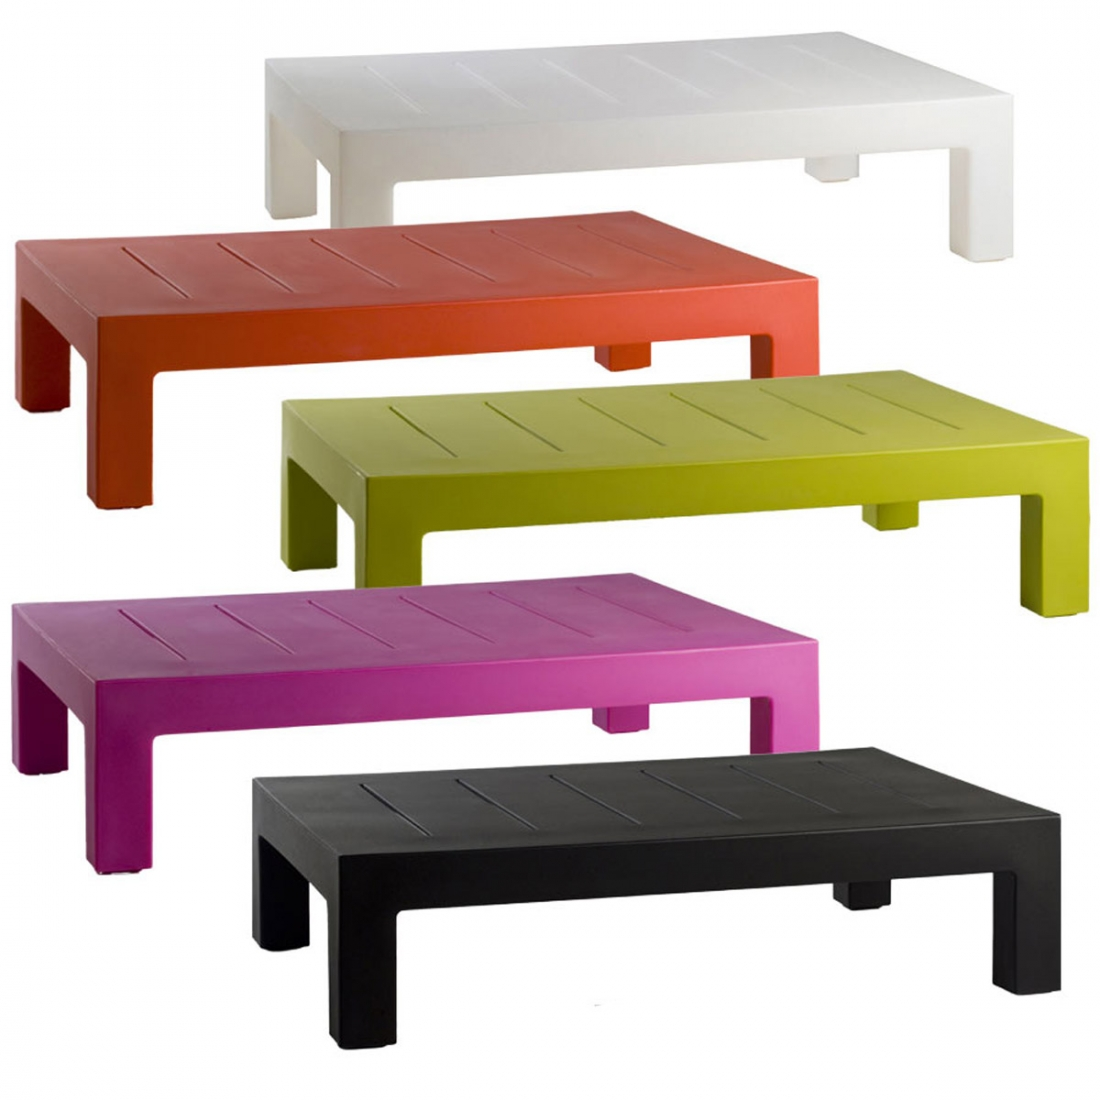 Table basse design d ext rieur jut par vondom - Table basse exterieur design ...